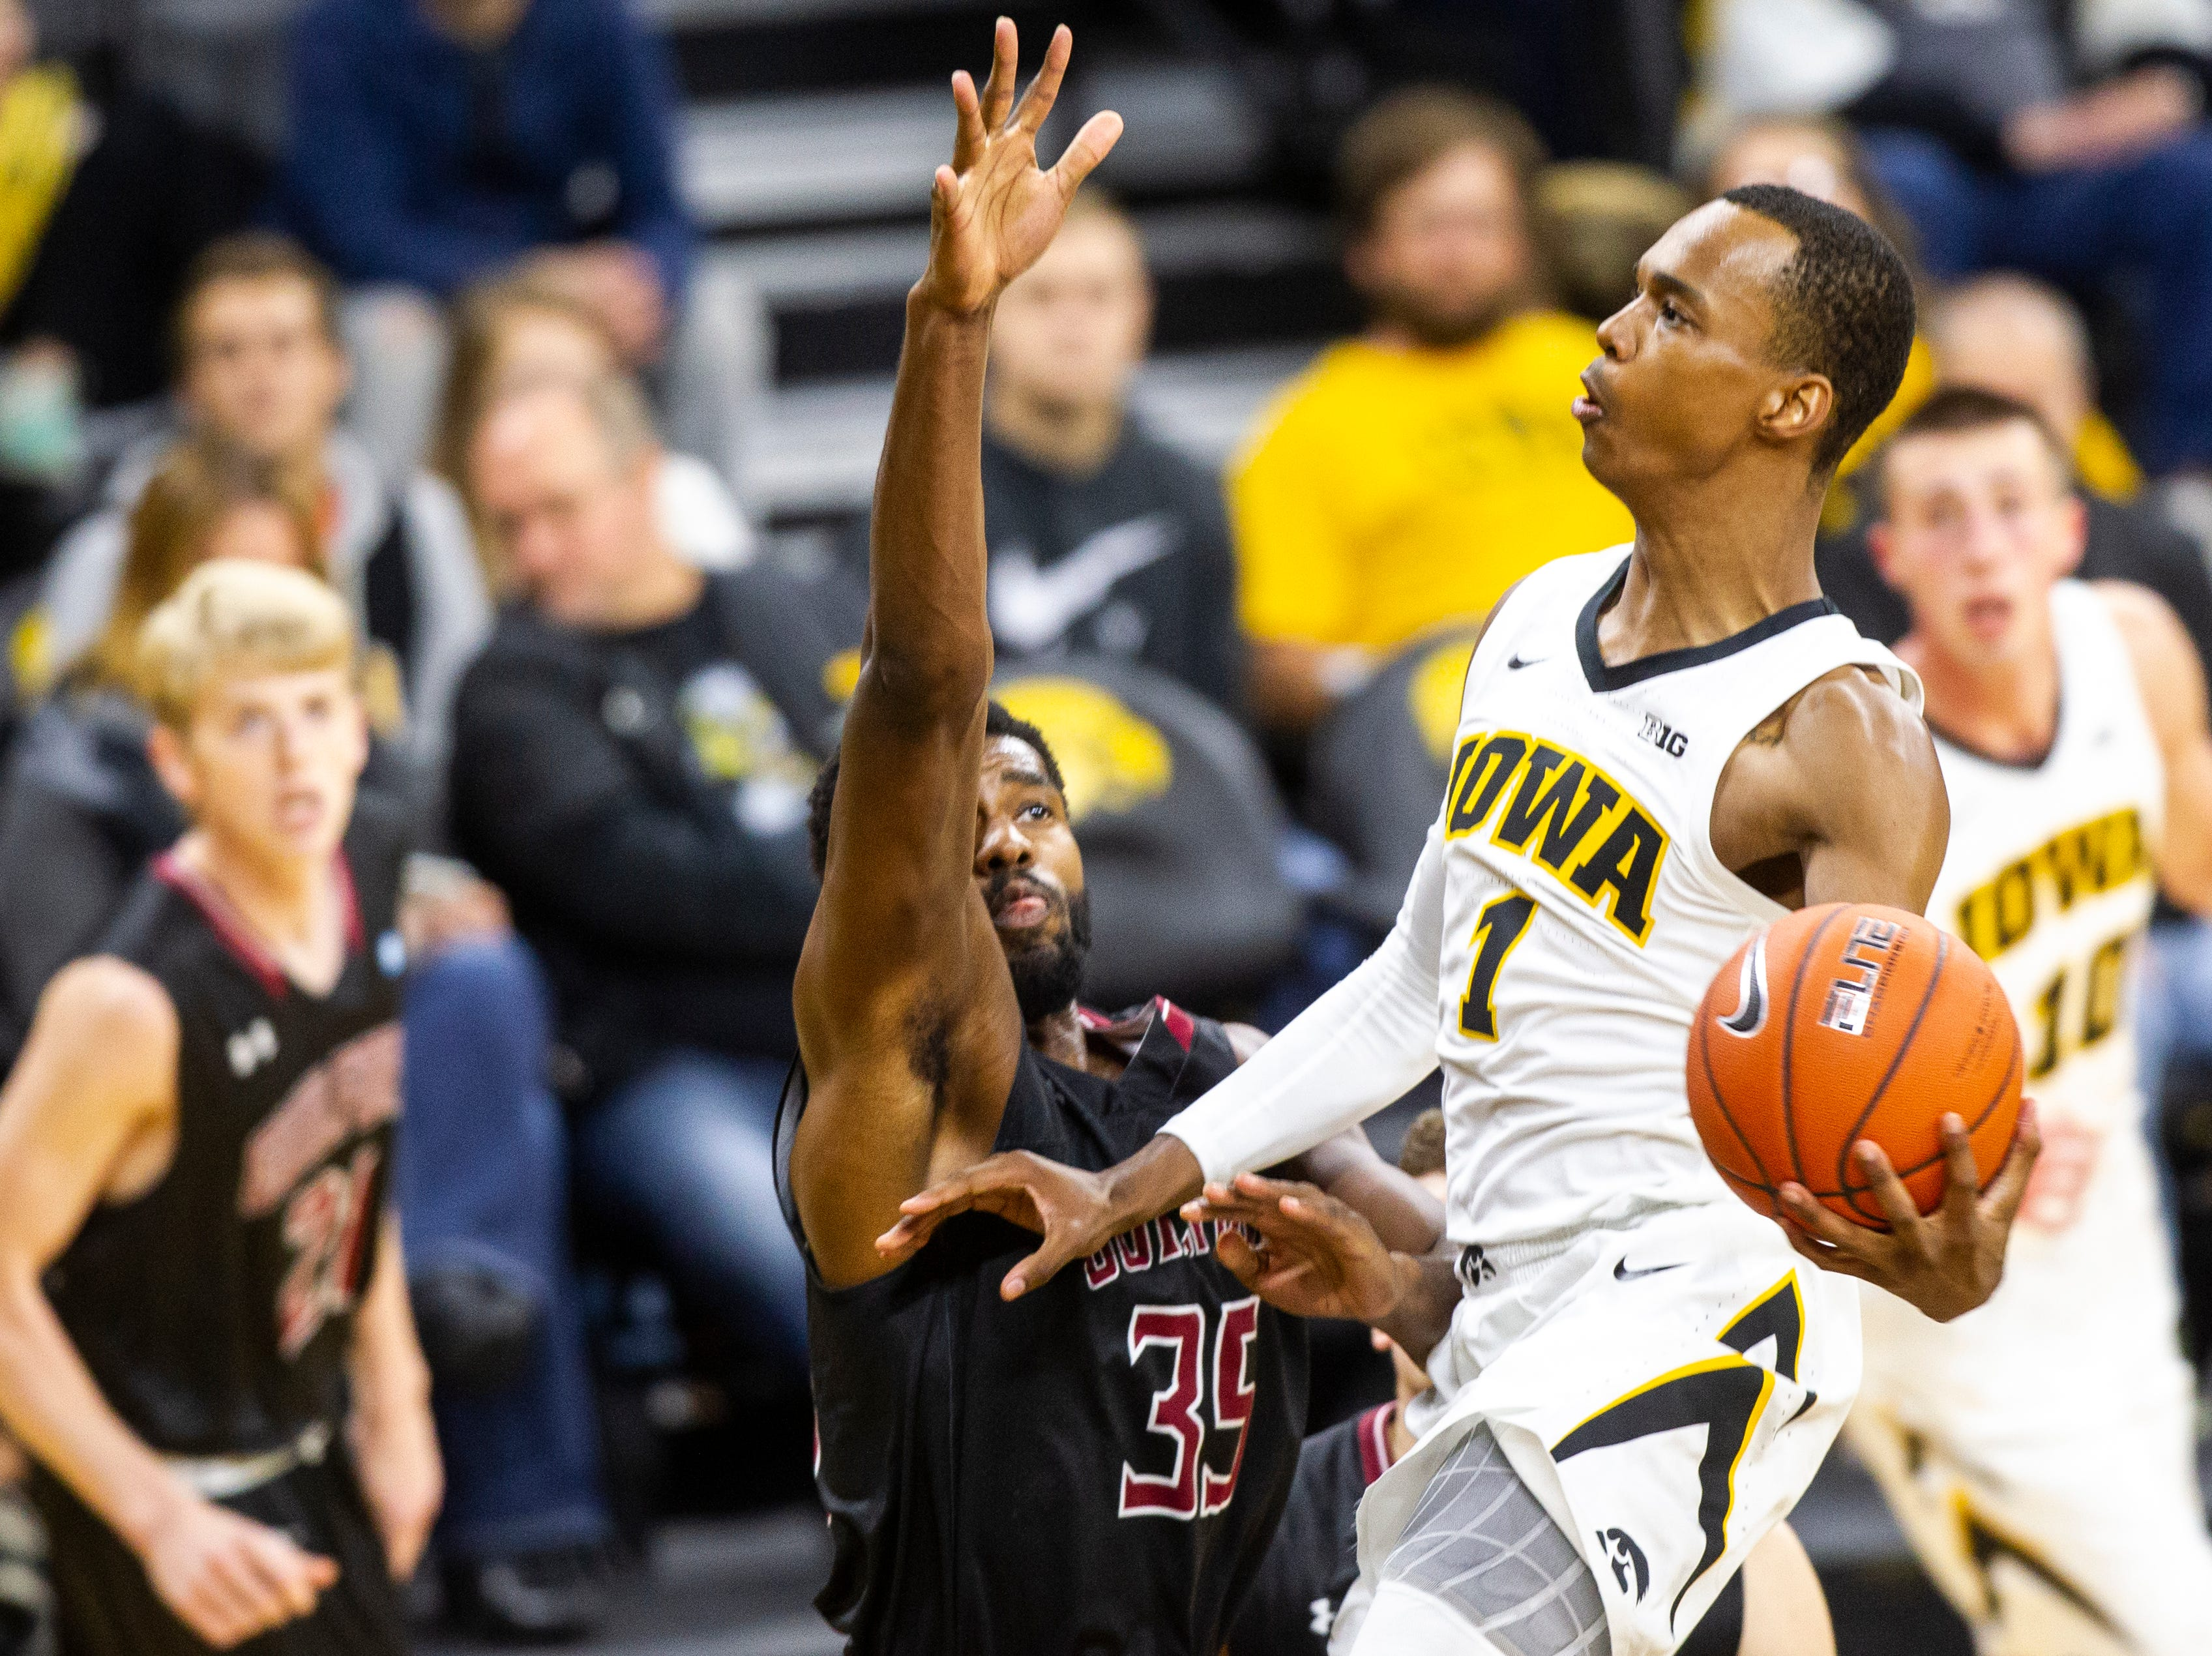 Iowa guard Maishe Dailey (1) goes for a layup during a men's basketball exhibition game on Sunday, Nov. 4, 2018, at Carver-Hawkeye Arena in Iowa City.